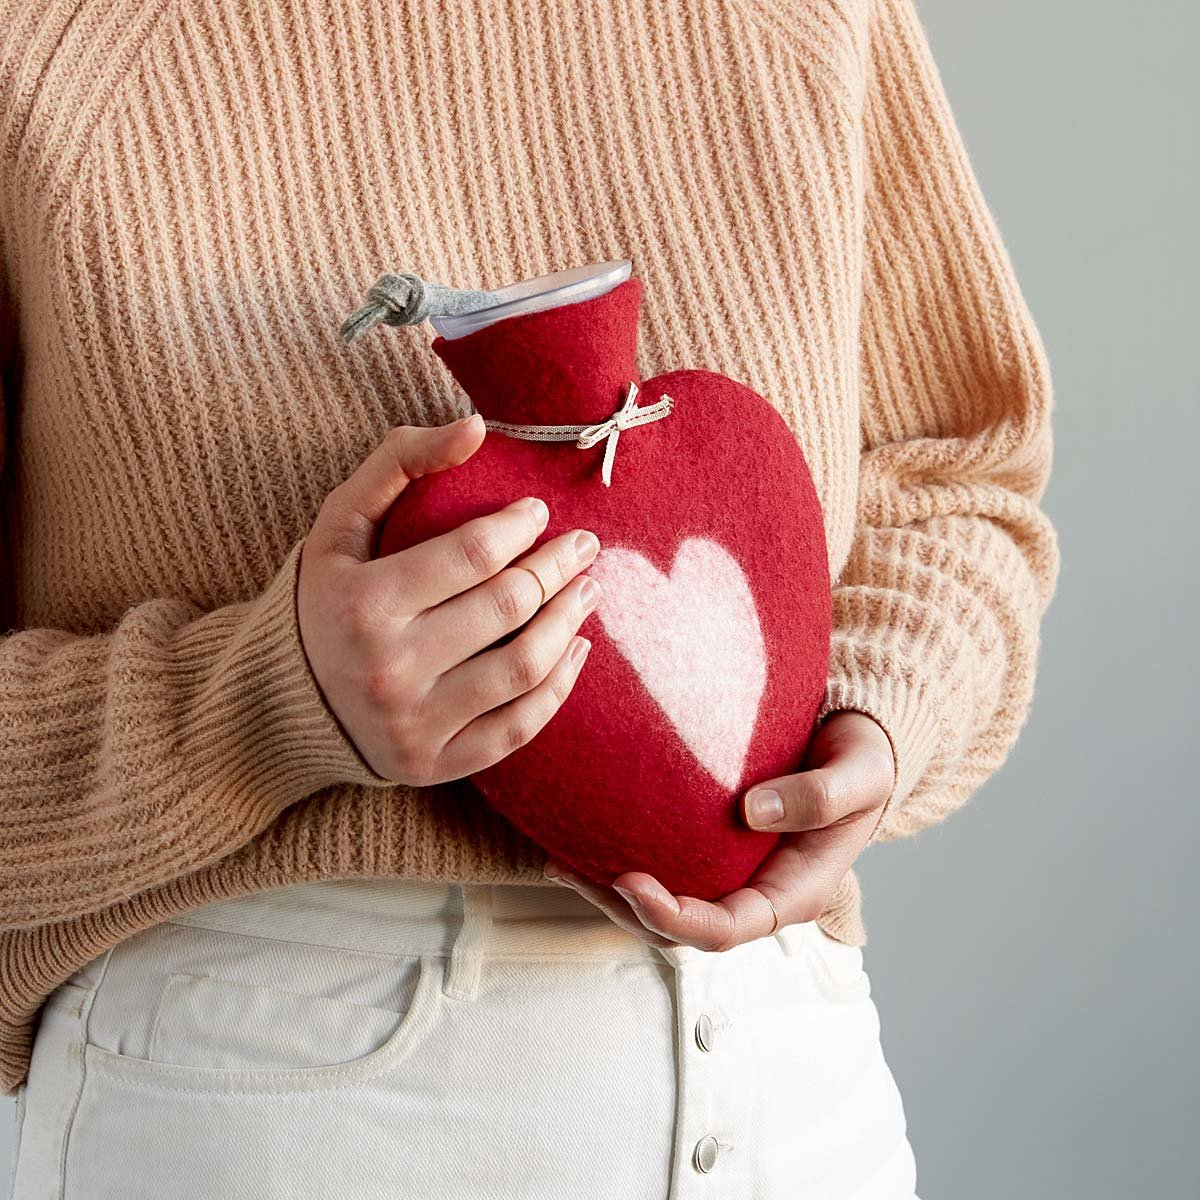 Cozy Heart Hot Water Bottle | UncommonGoods